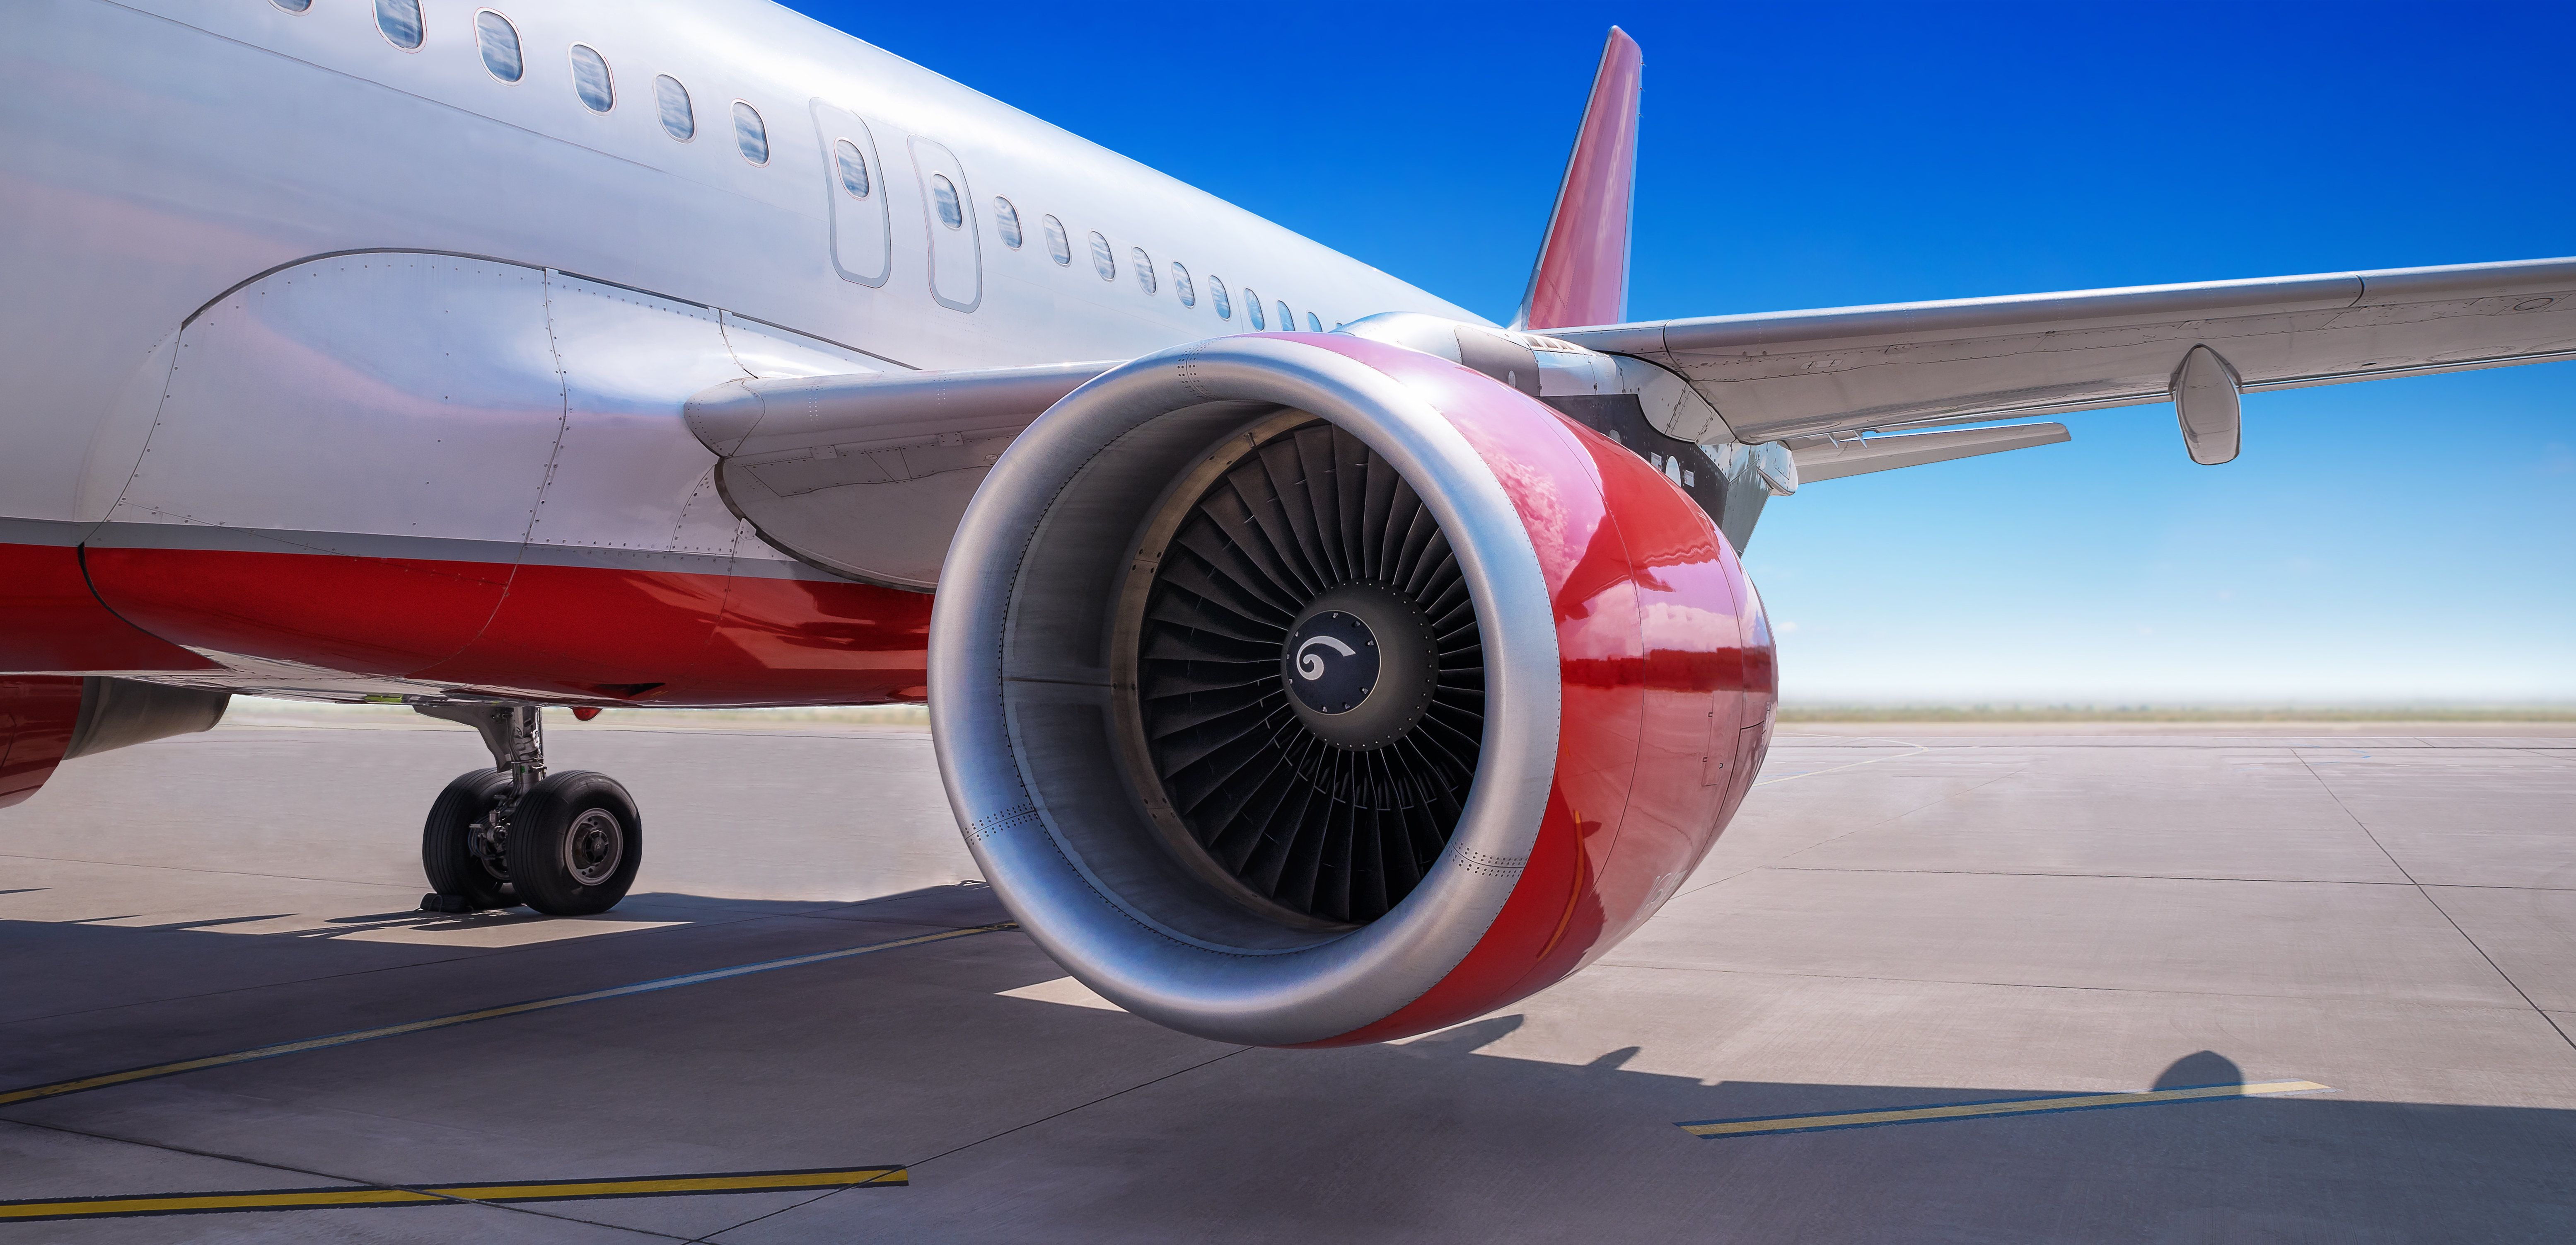 turbine of an airliner on the runway